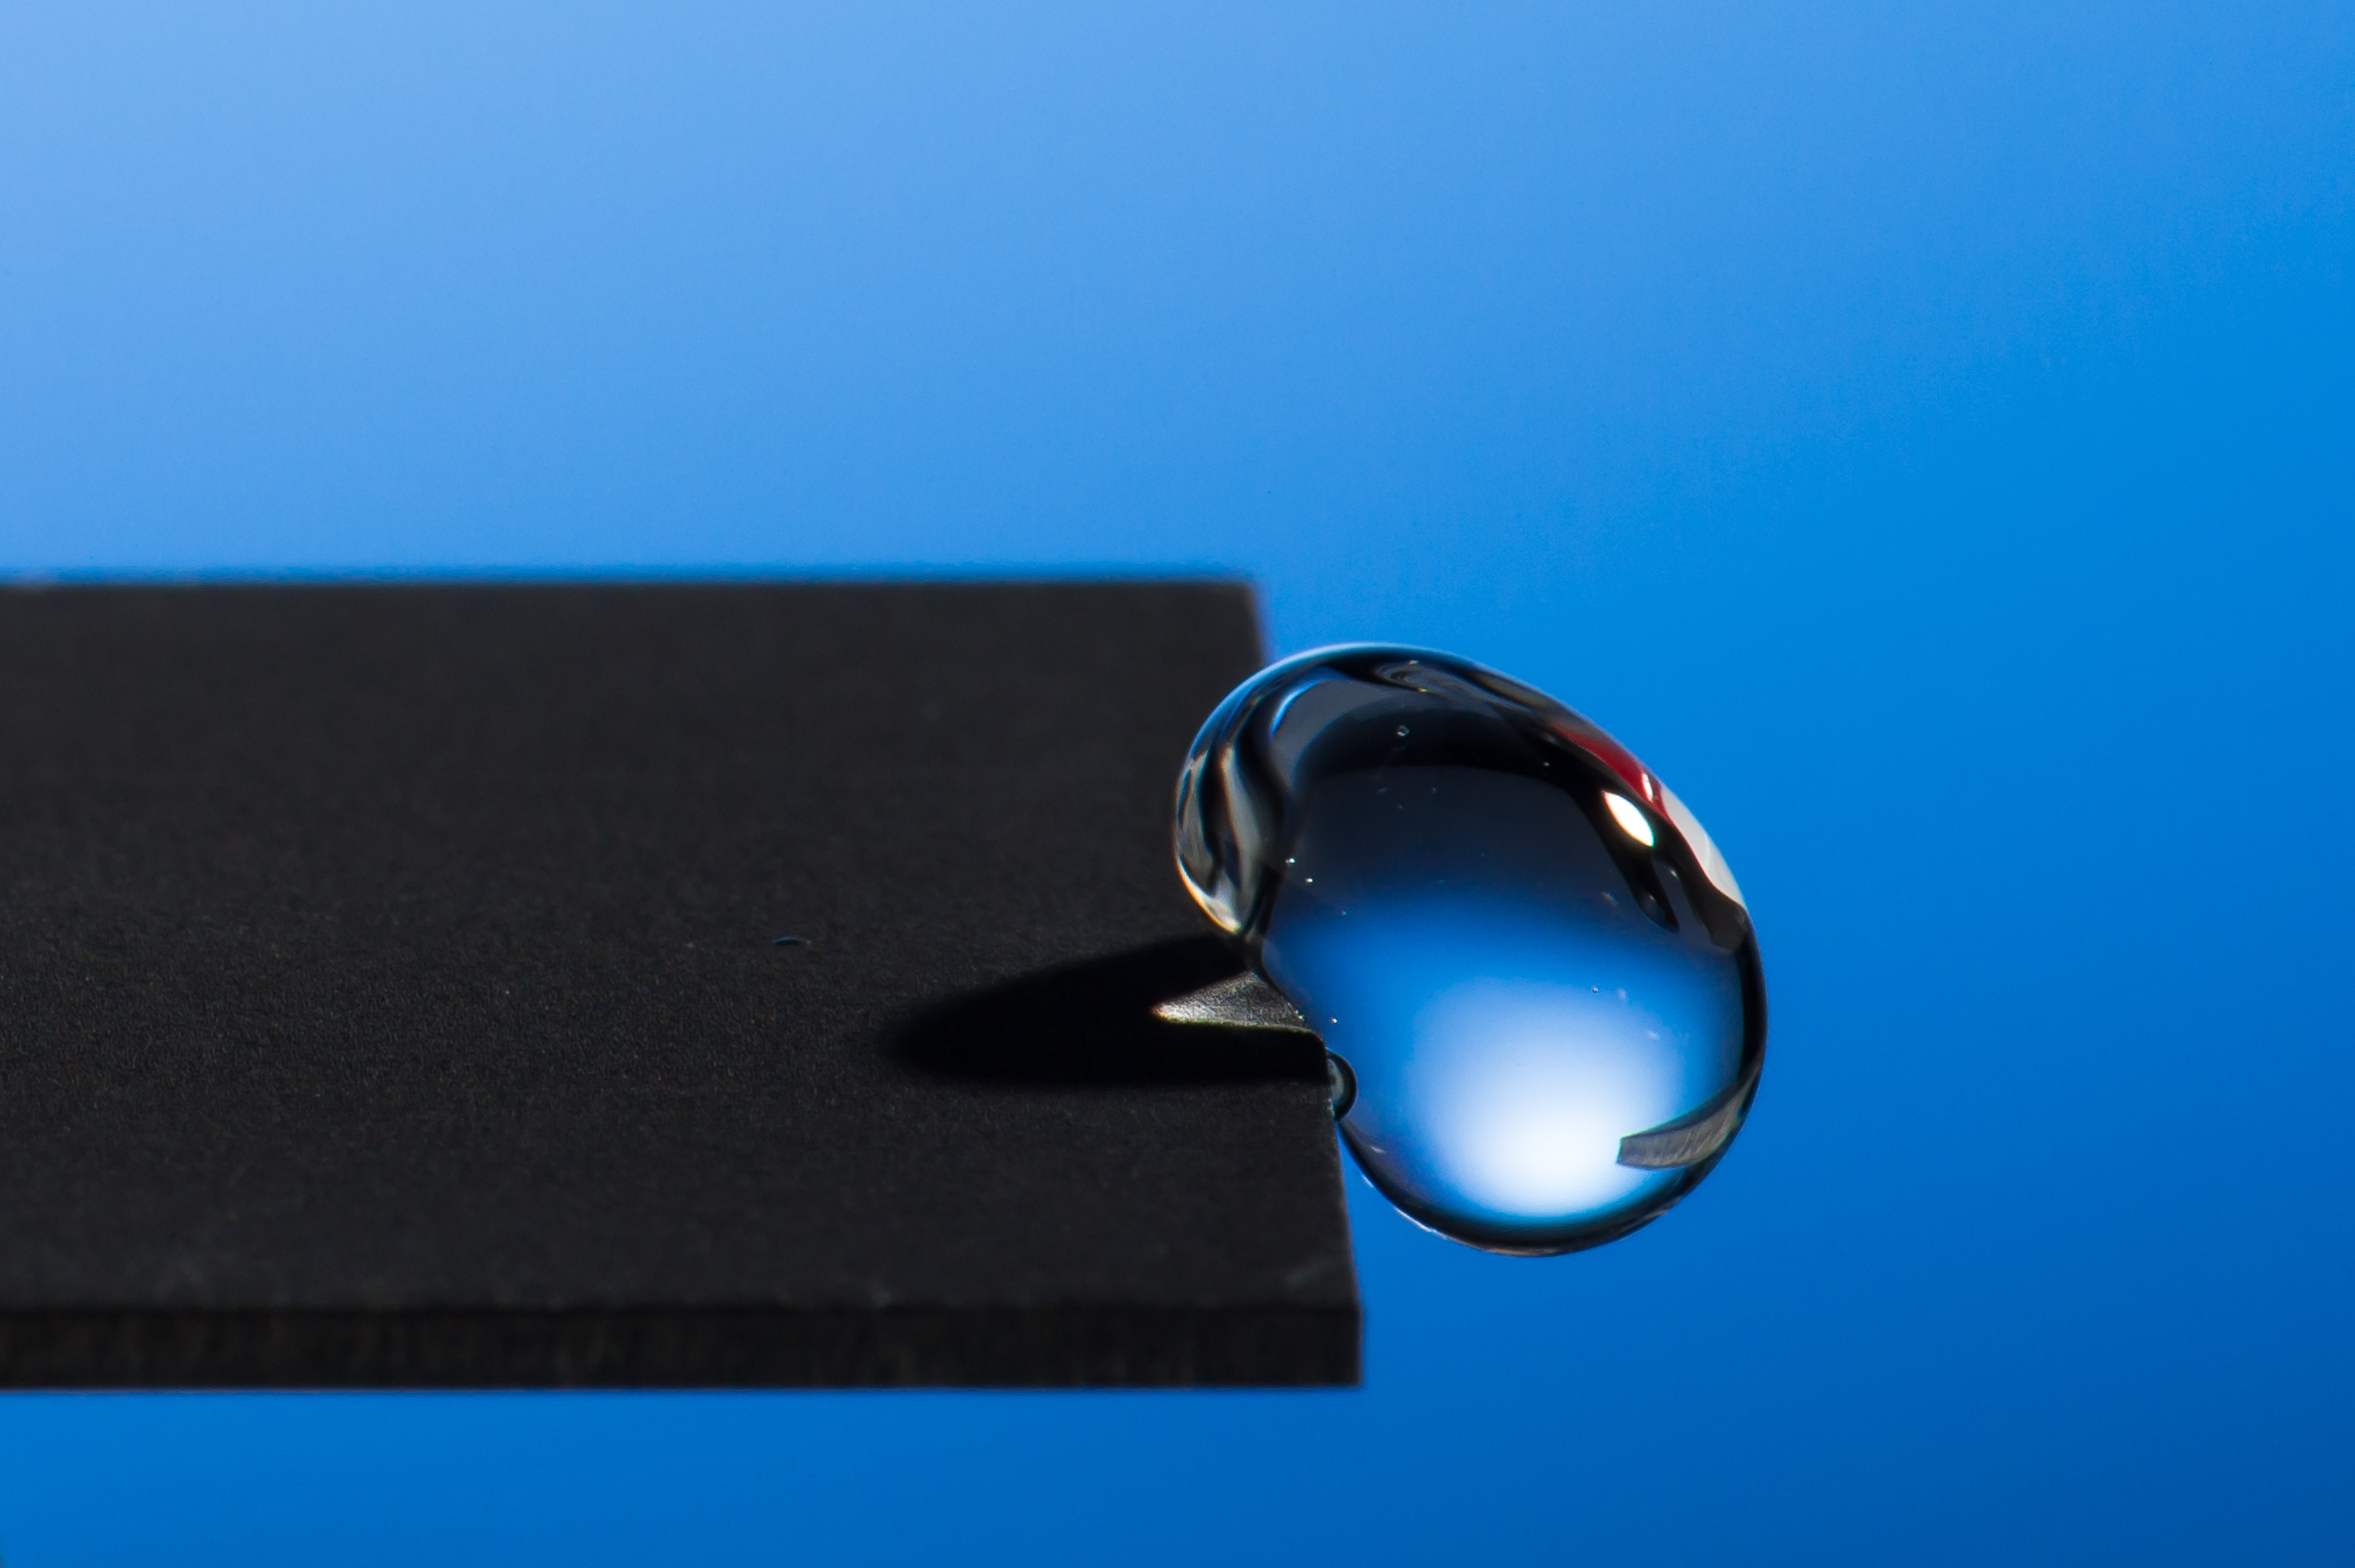 drop of water about to drop off the edge of a metal surface.